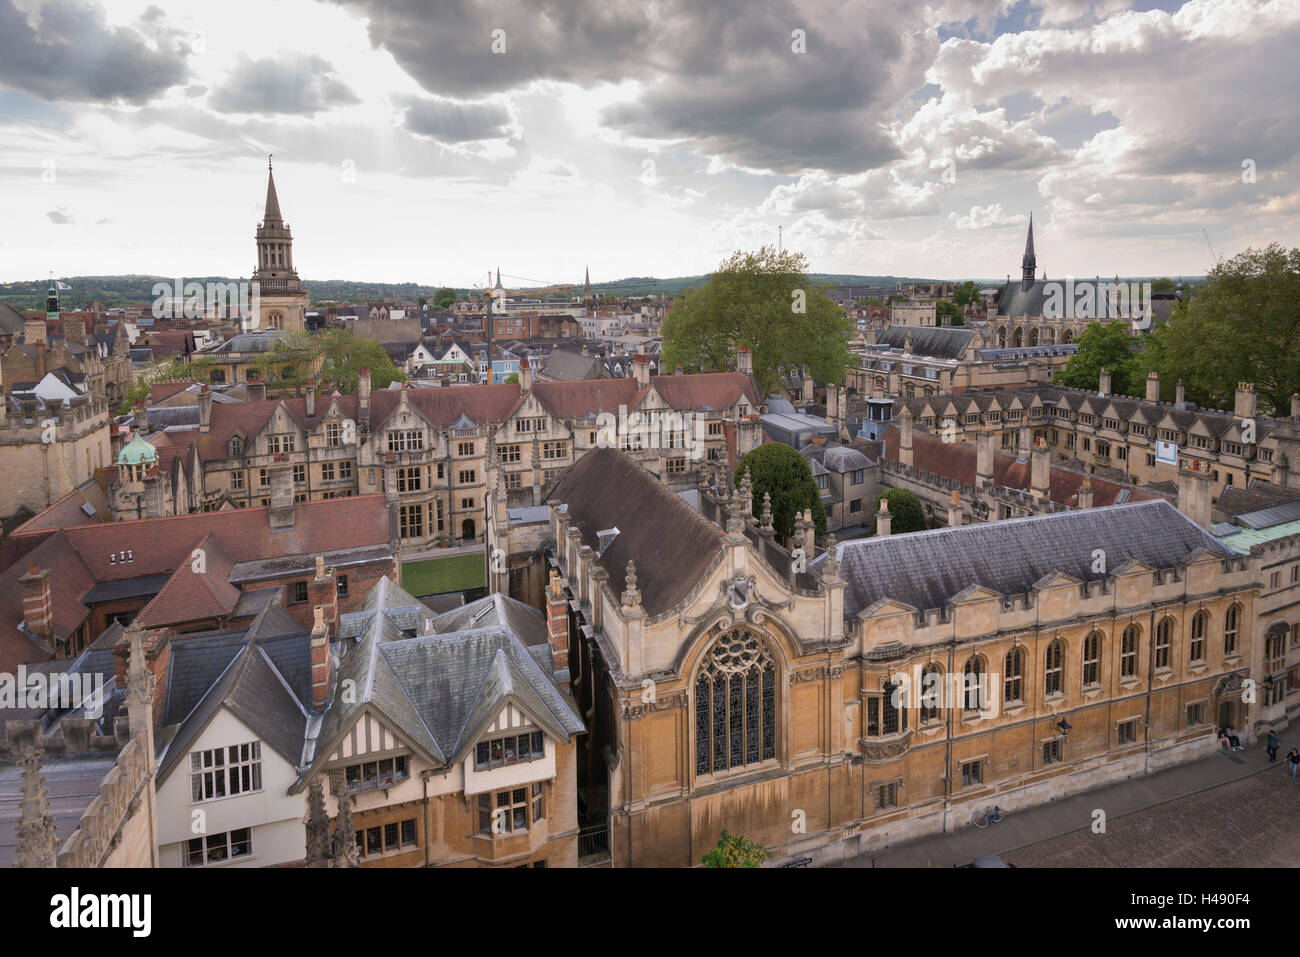 Brasenose College and Oxford skyline, Oxfordshire, England. - Stock Image